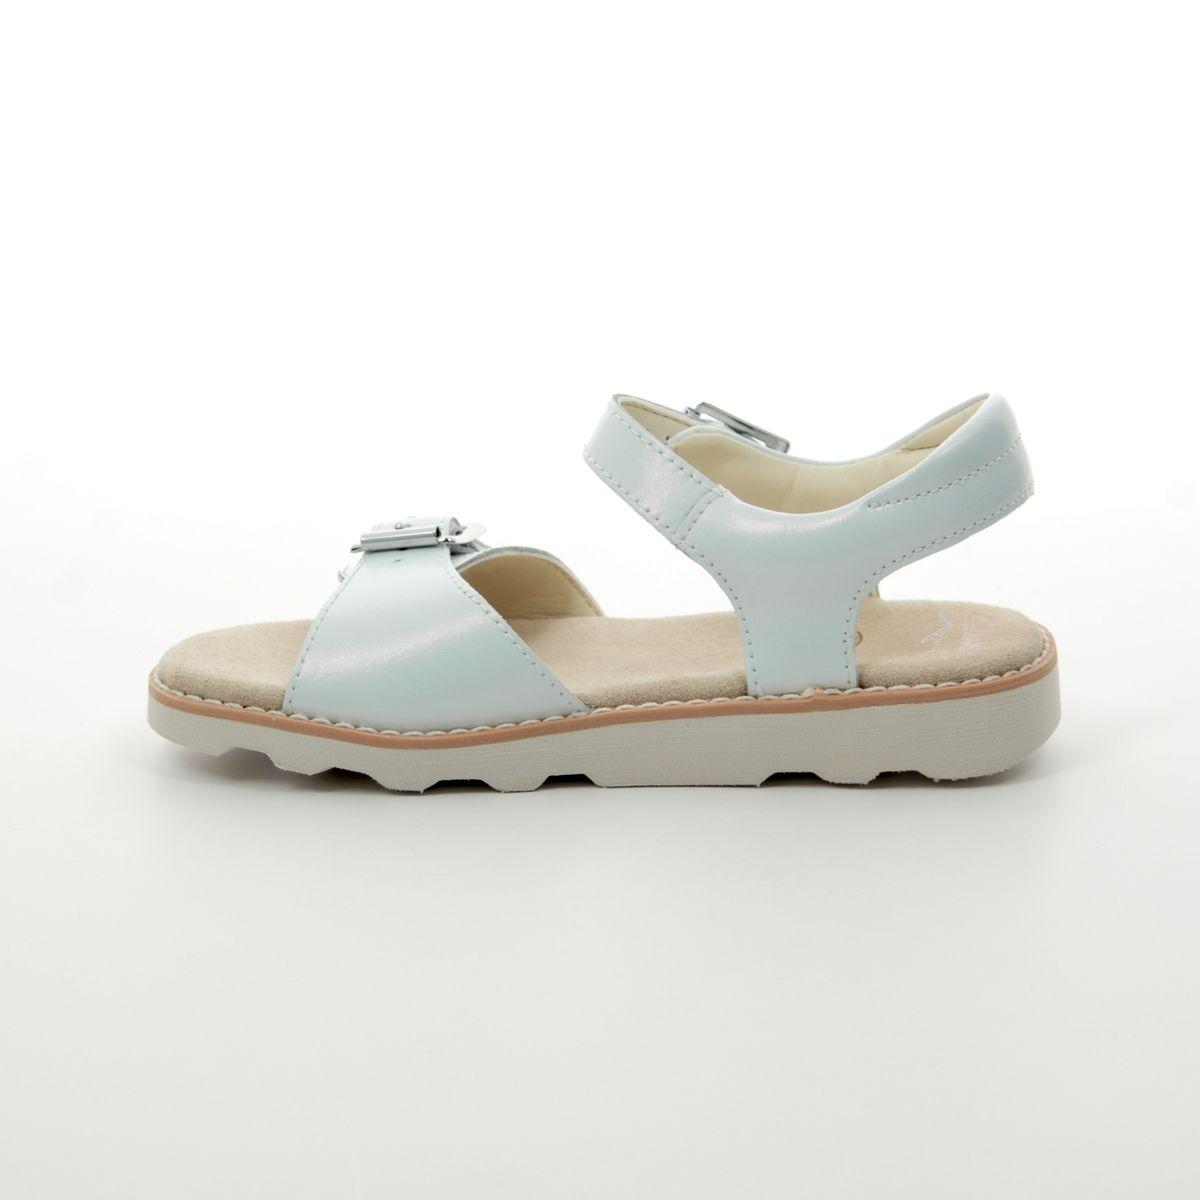 de11bdaf9171 Clarks Sandals - Silver - 412636F CROWN BLOOM K